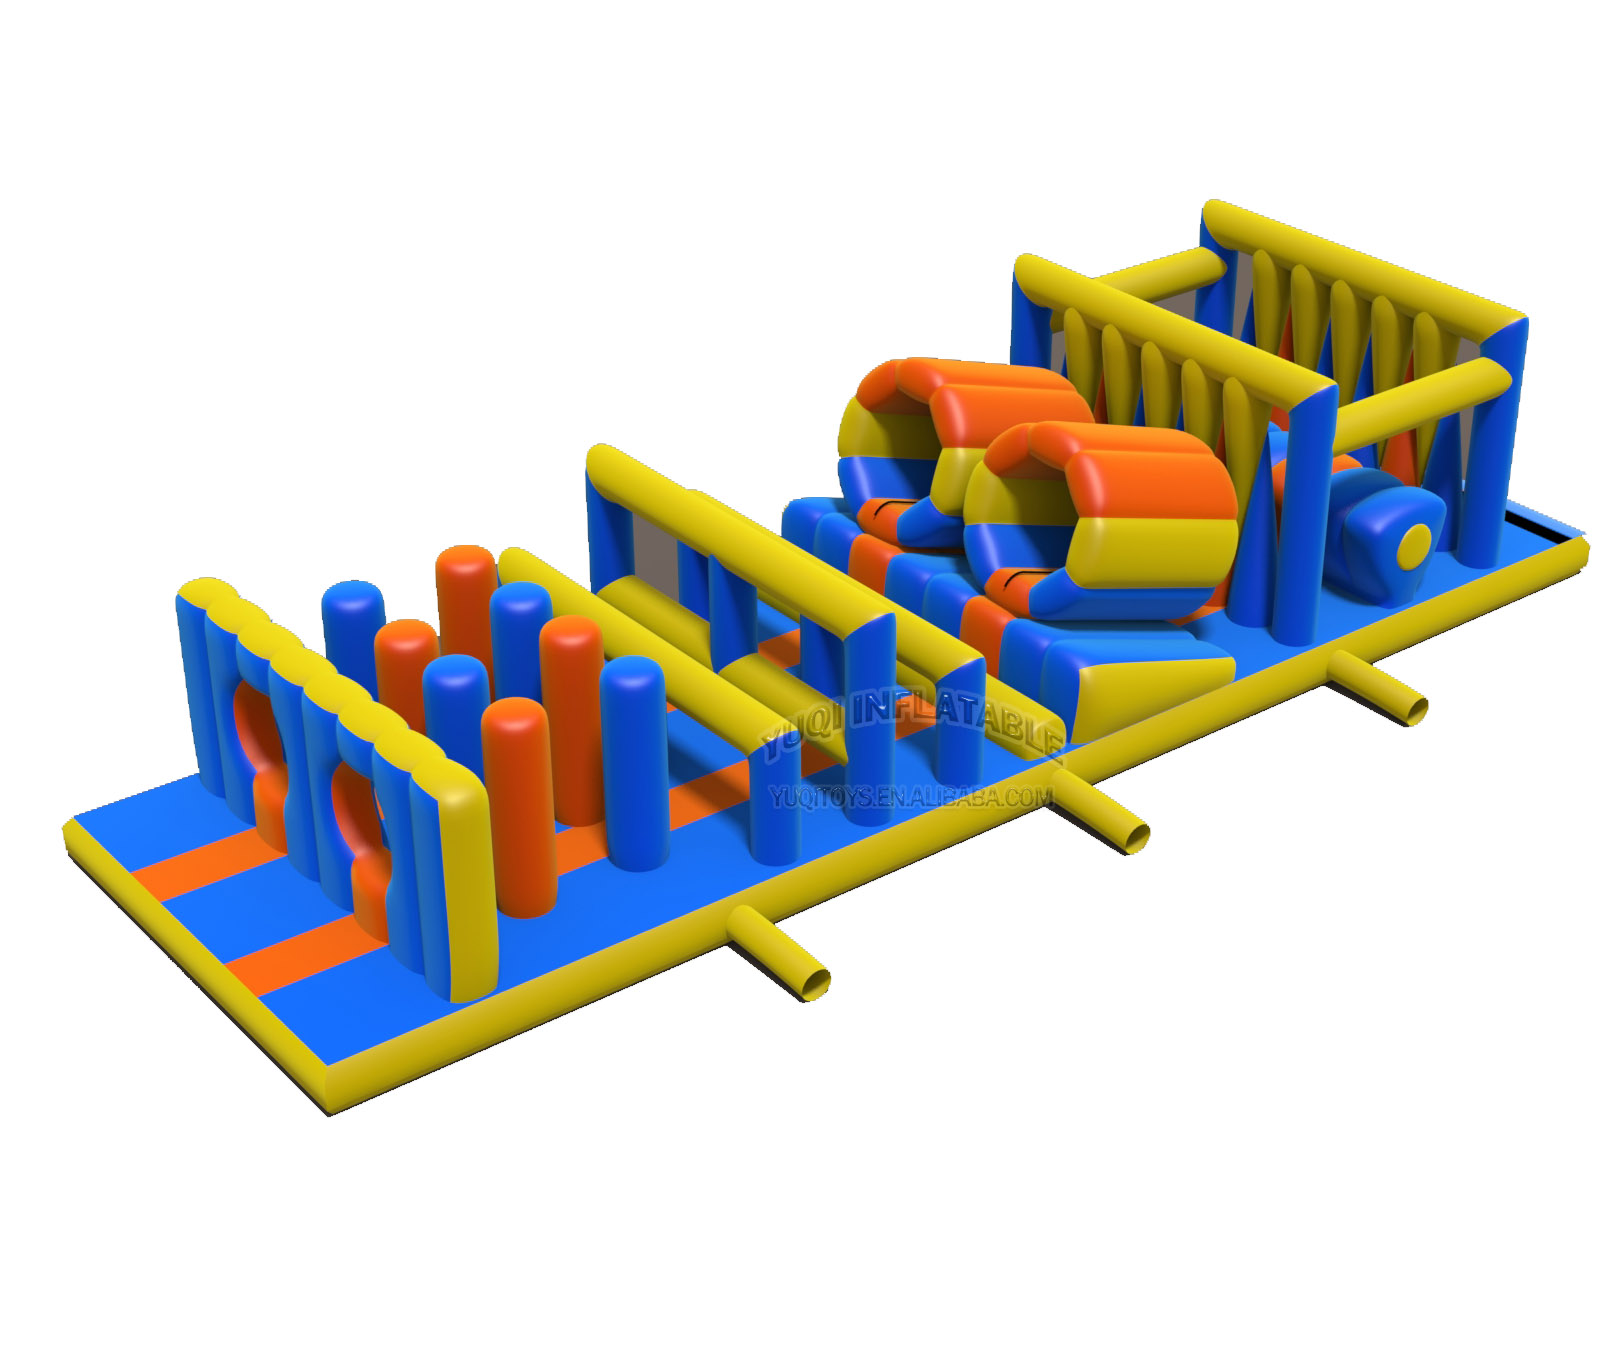 YUQI-Outdoor Inflatable Adventure Obstacle Course With Certificates | yuqi-12